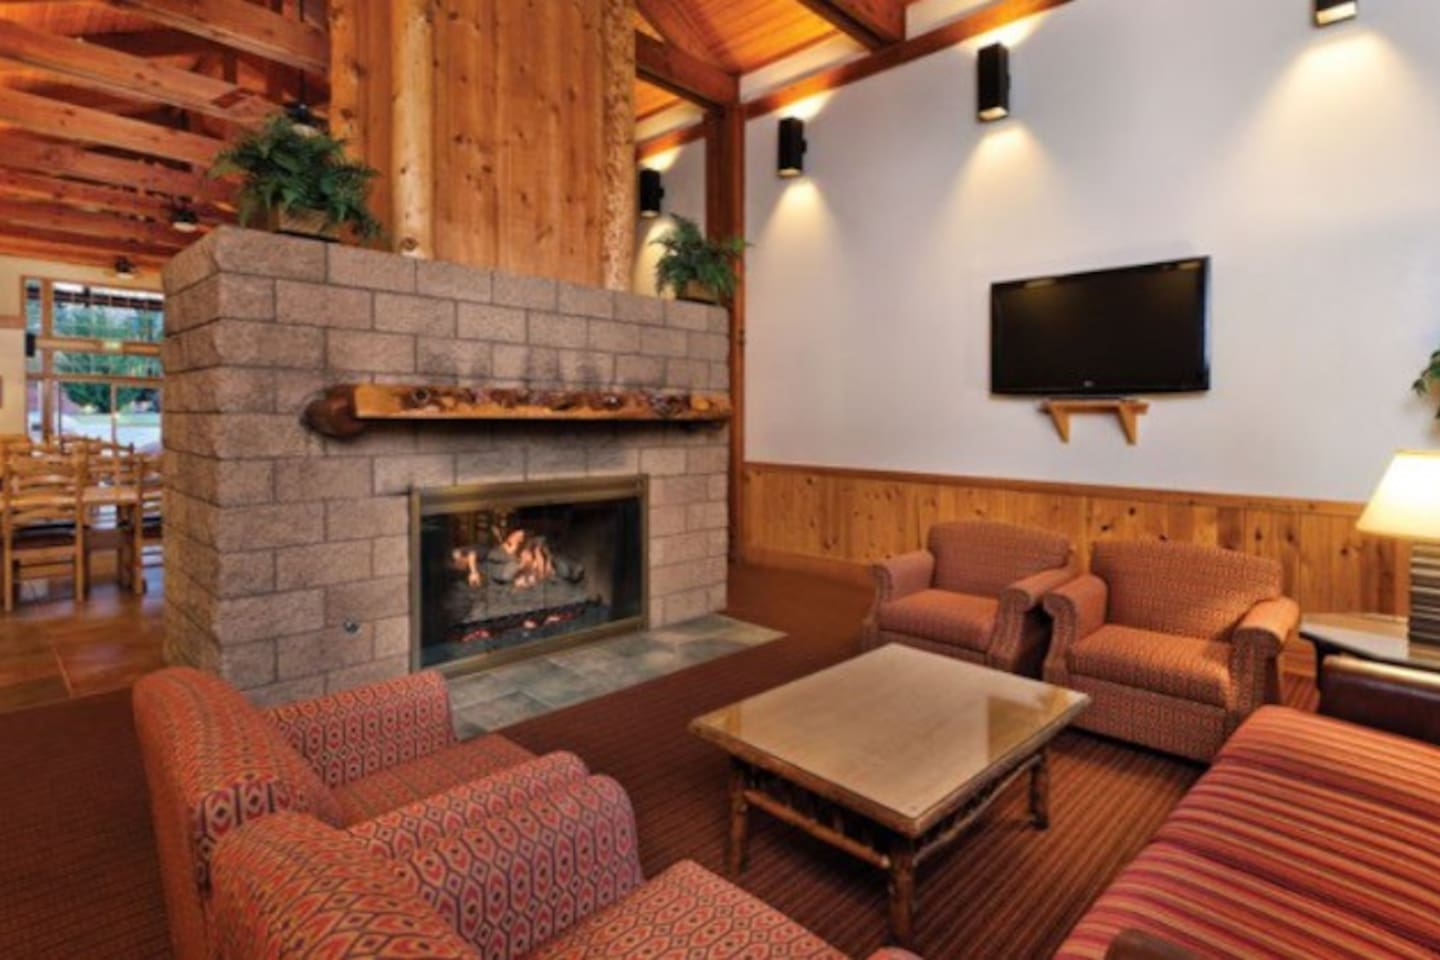 Huge Fireplace With Large Seating Area & Movies Playing On TV In Recreation Lodge